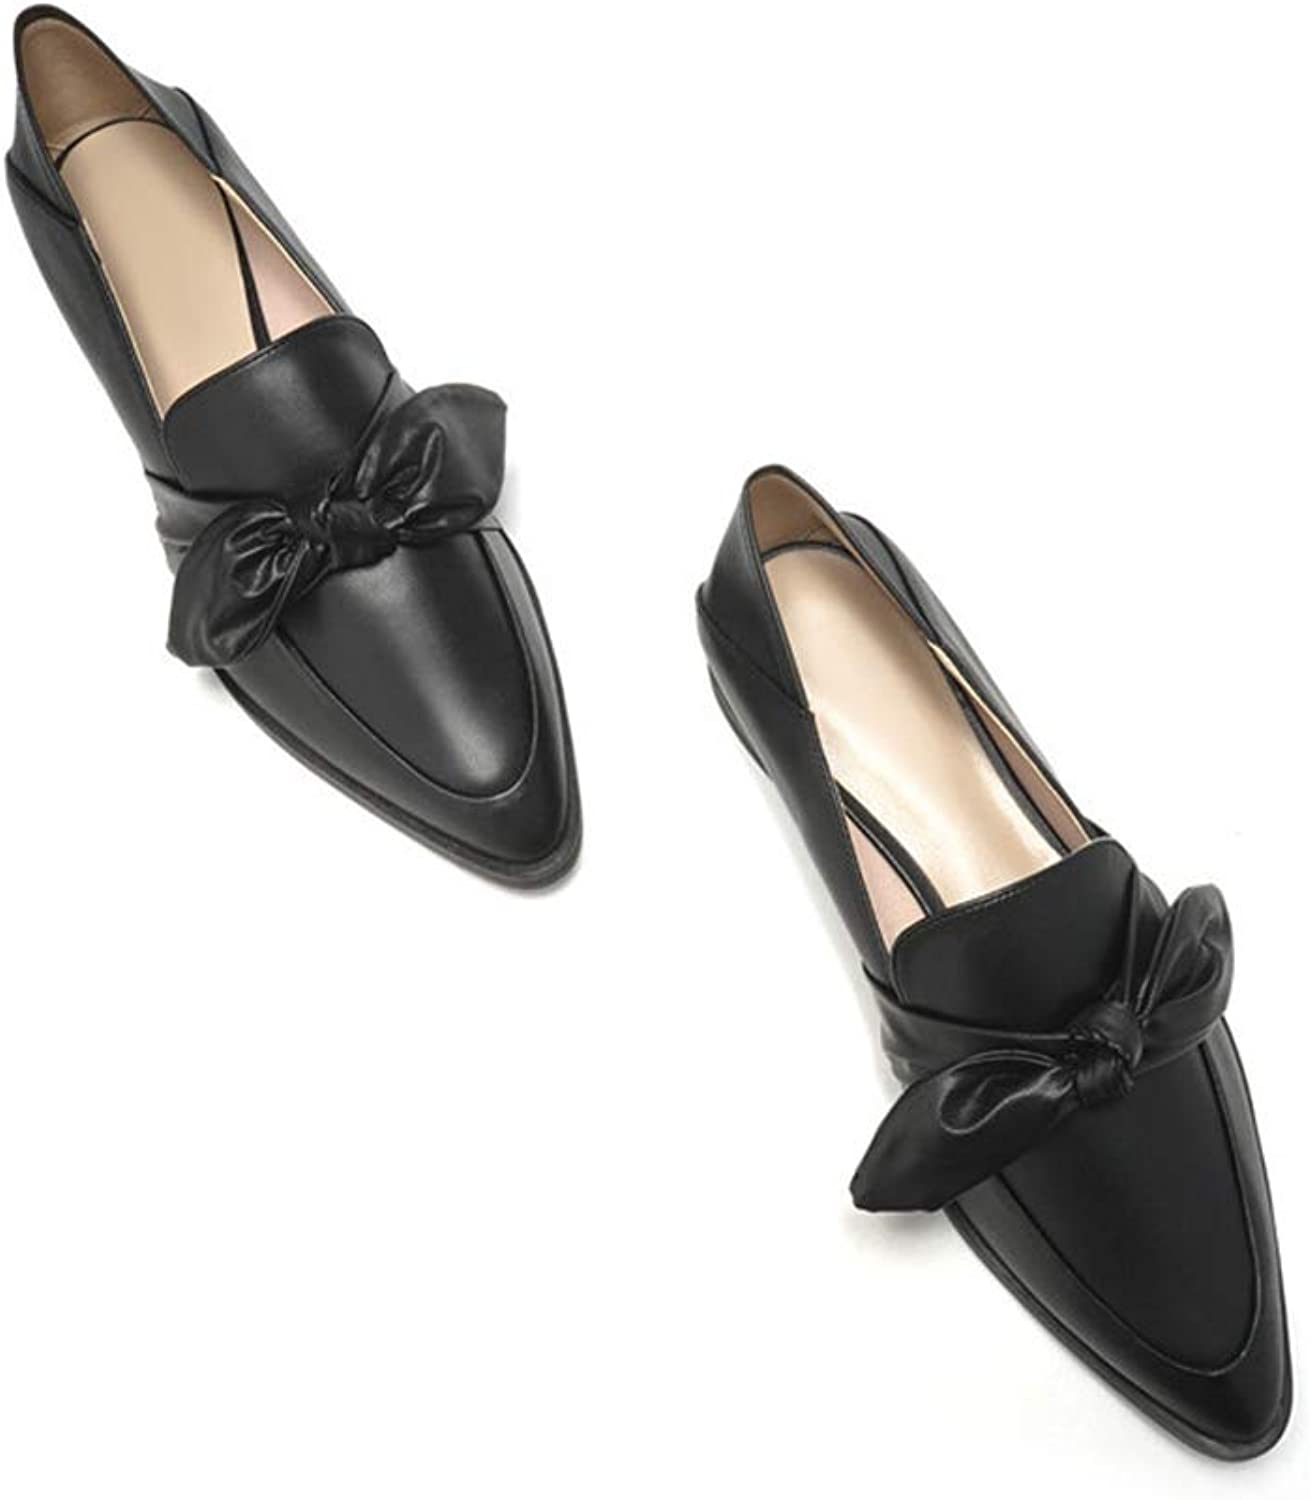 238dhdf3effggf New Pointed Low-Heeled Korean Version of Lok Fu shoes a Pedal Bow Lazy shoes